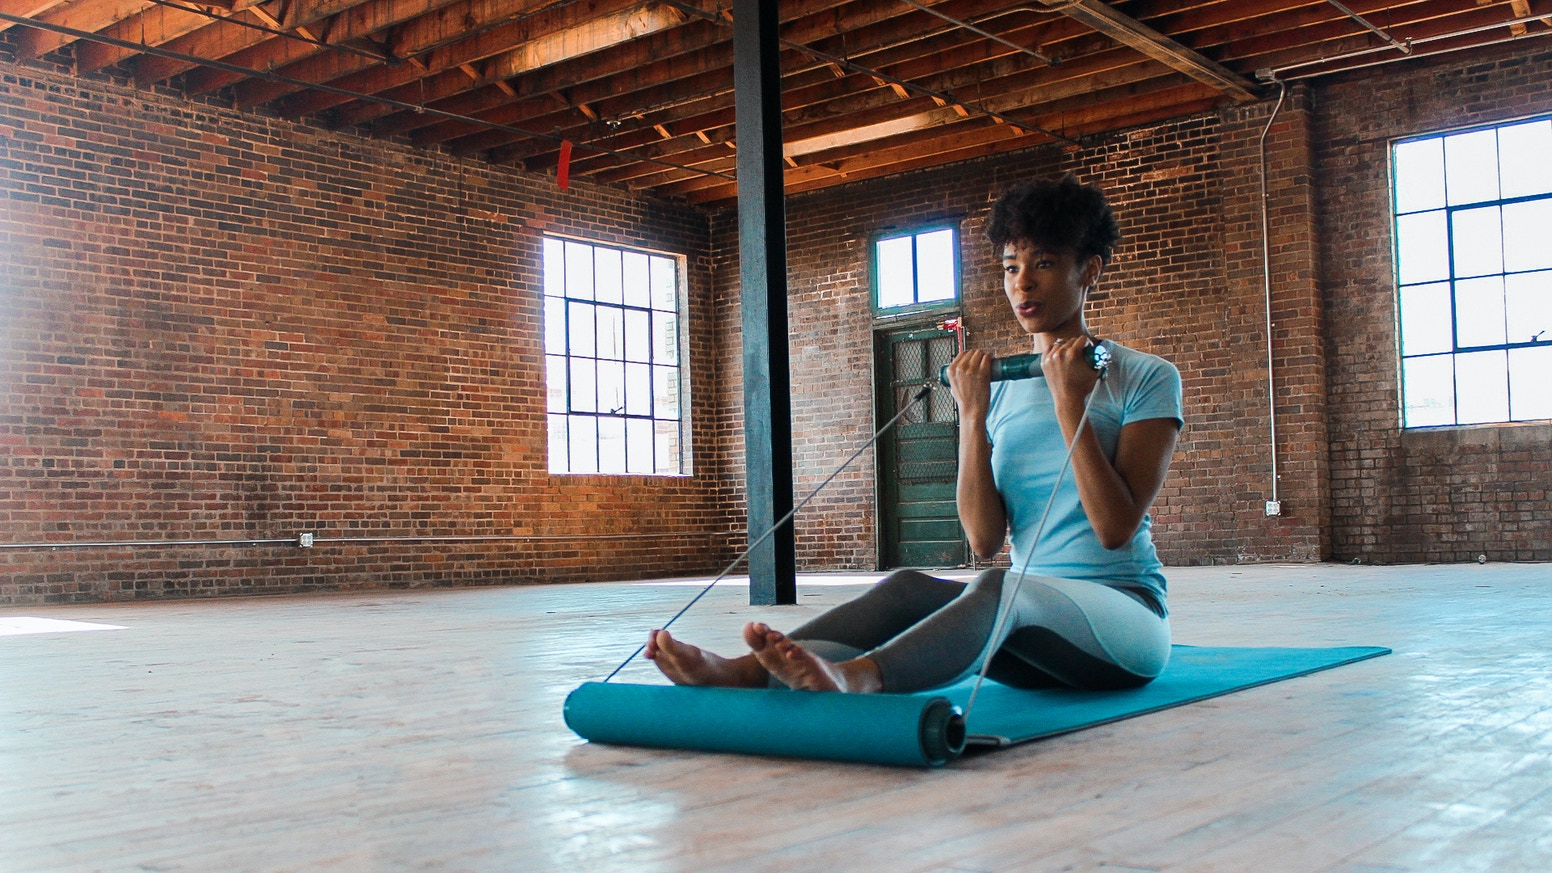 Compact   Portable   Unique - Enjoy quick and fun workouts without sacrificing valuable space in your home, studio or hotel room.